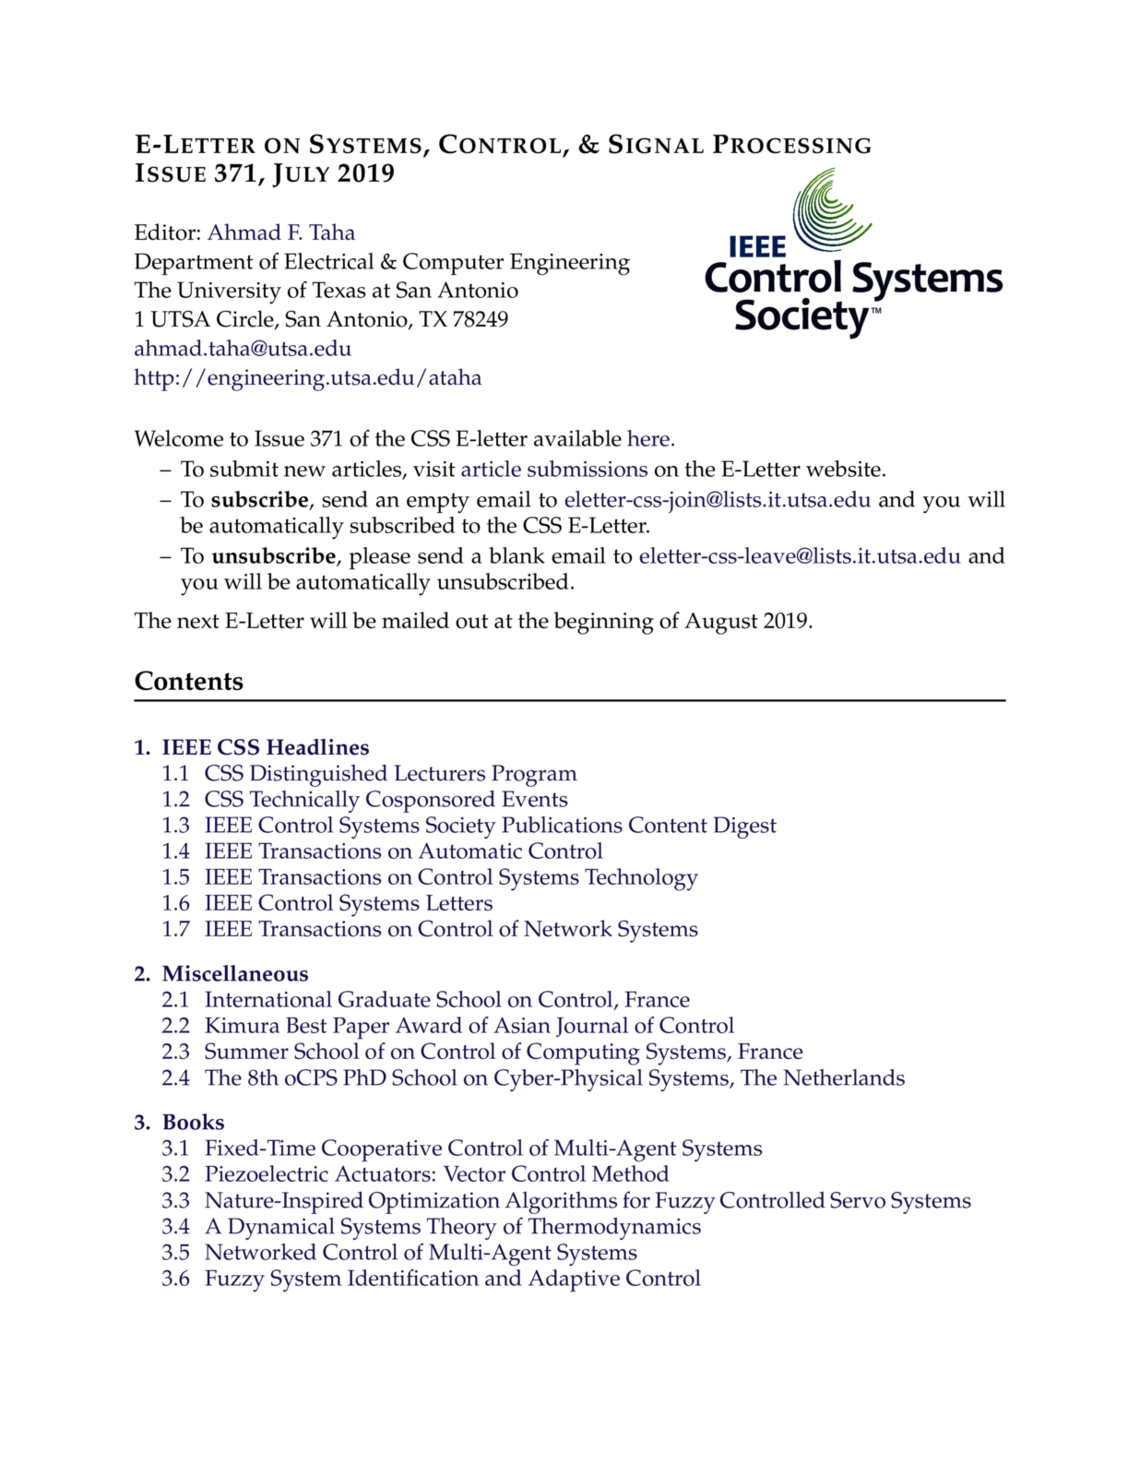 E-Letter on Systems, Control, & Signal Processing | Issue